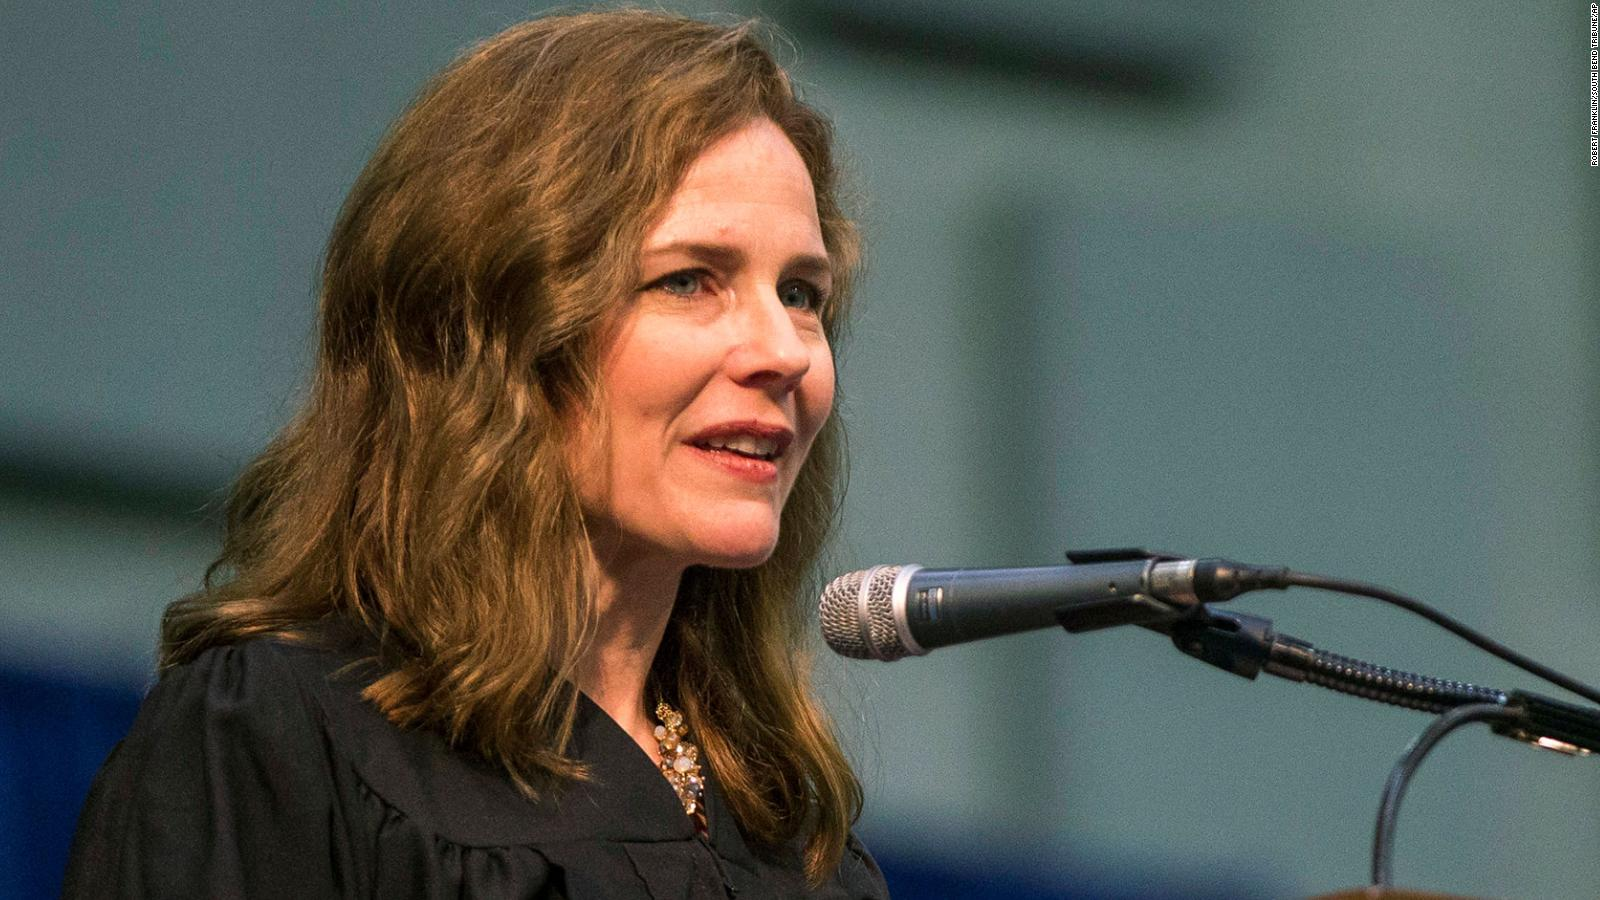 Amy Coney Barrett Initially Failed To Disclose Talks On Roe V Wade Hosted By Anti Abortion Groups On Senate Paperwork Cnnpolitics